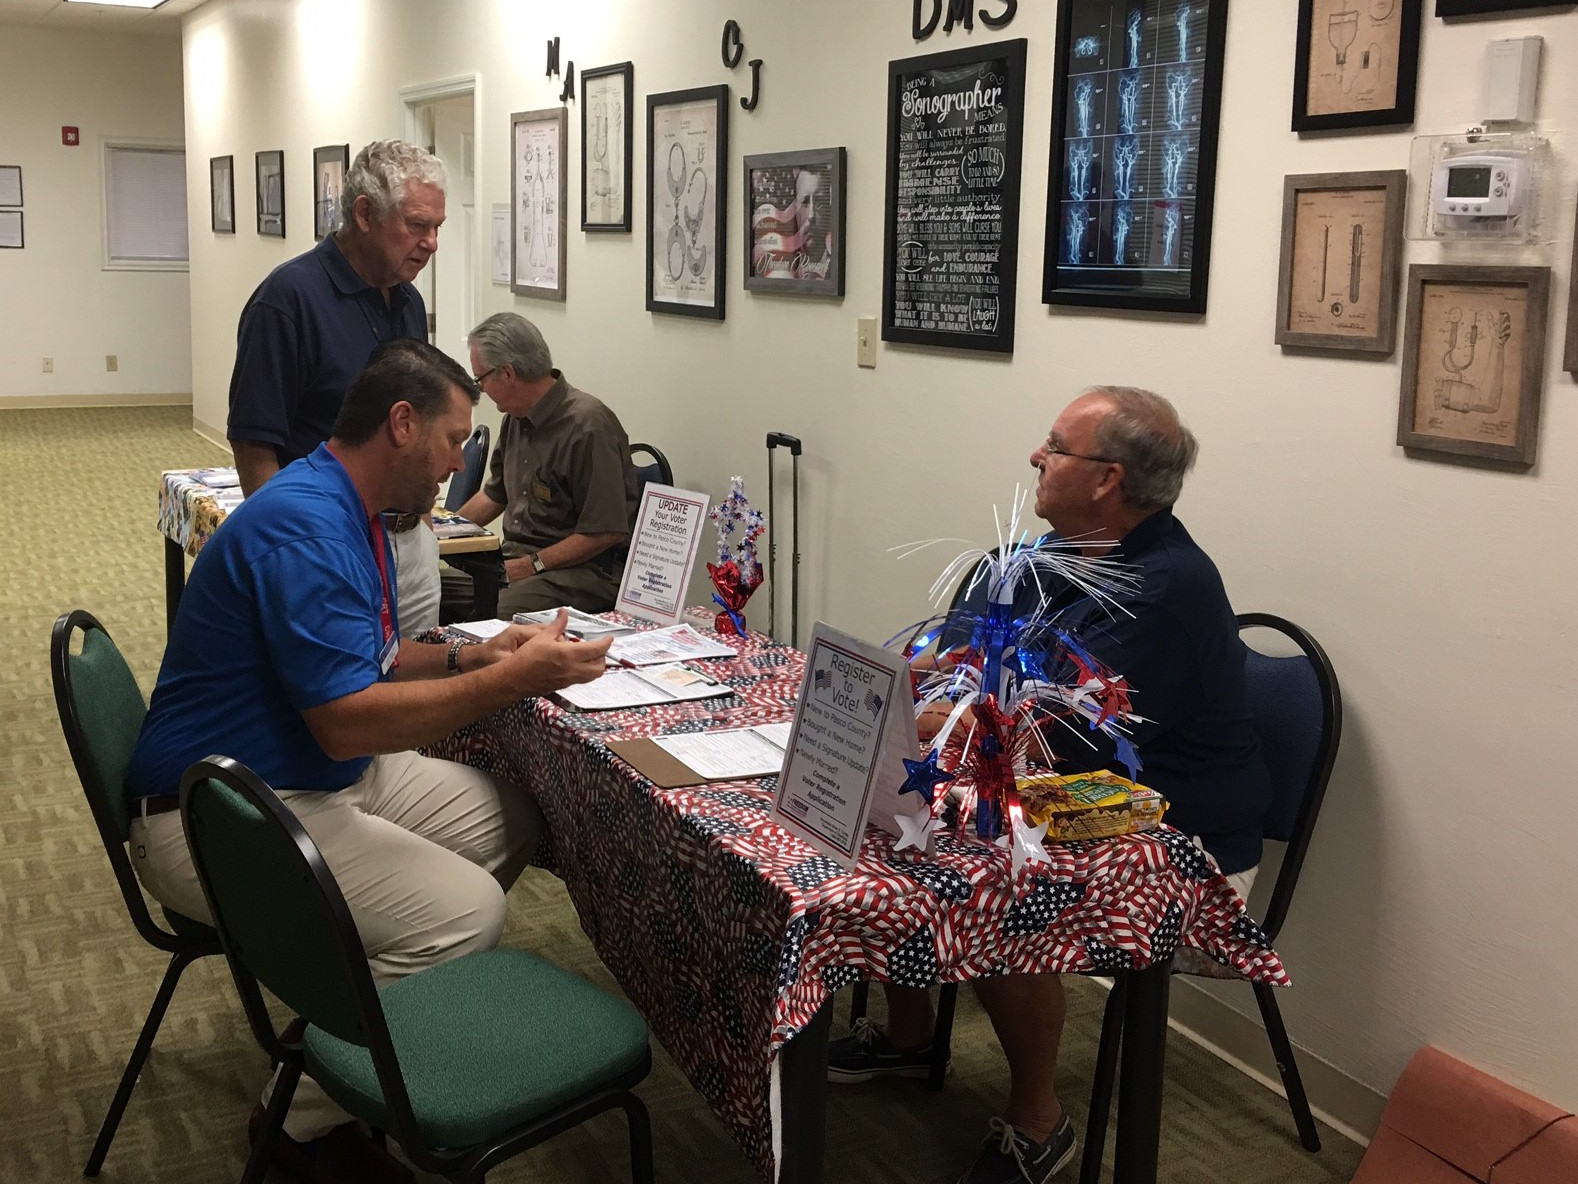 New Port Richey Celebrates Constitution Week